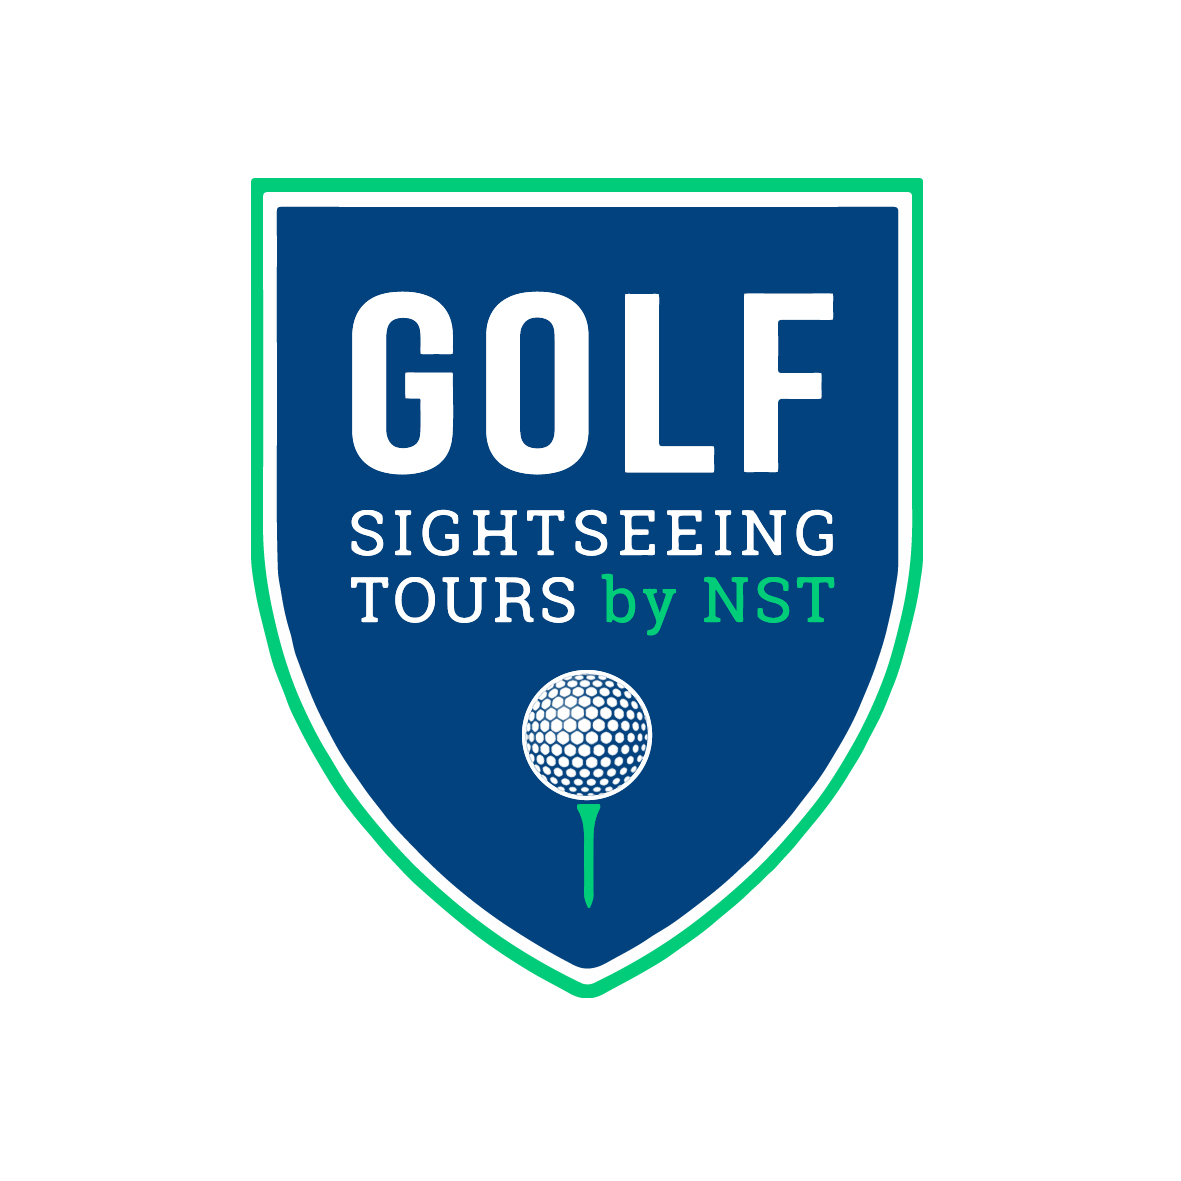 GOLF SIGHTSEEING TOURS